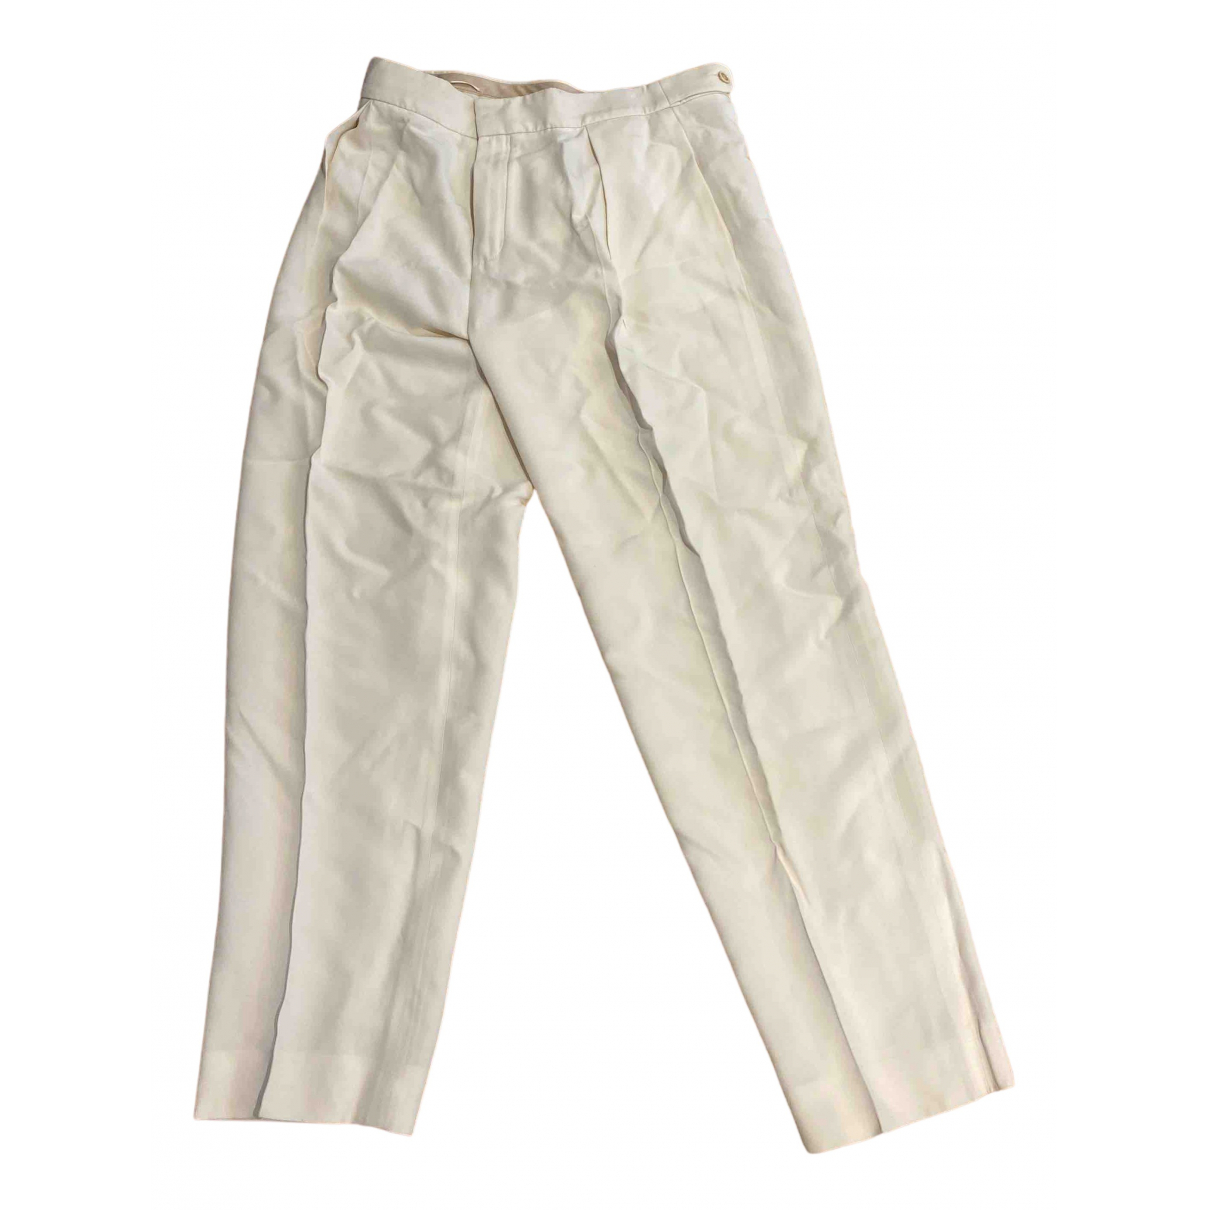 Chloé N White Cotton Trousers for Women 40 FR